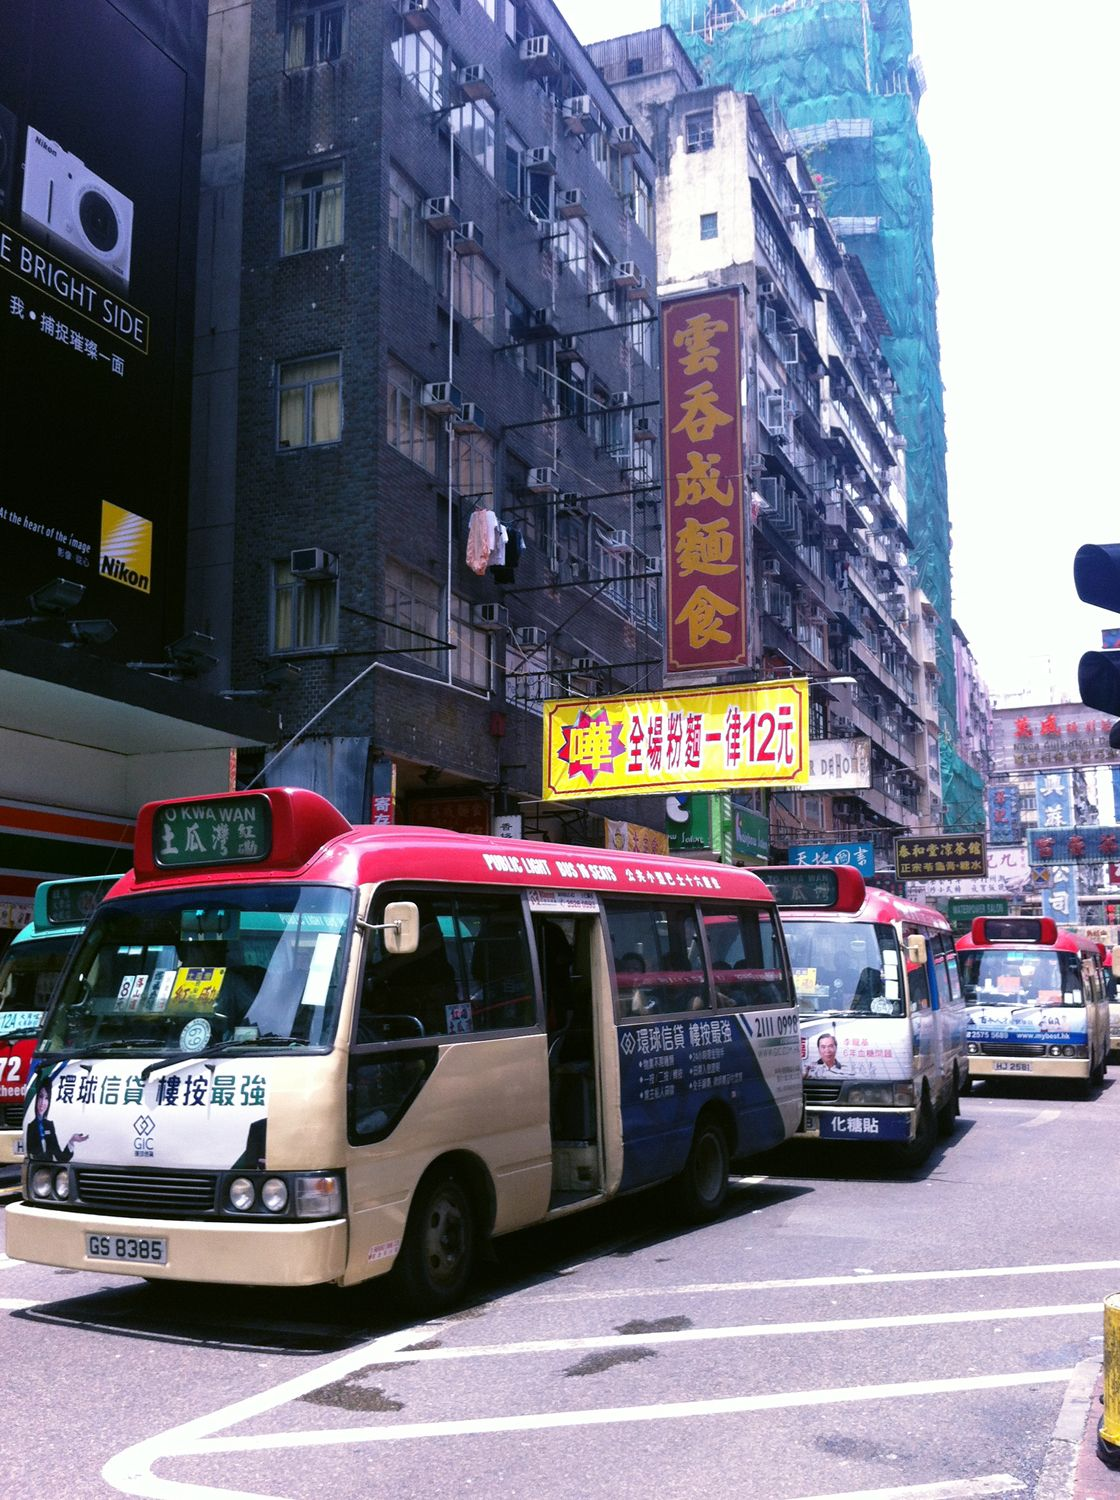 HK mini buses I was told that its nearly impossible to take those